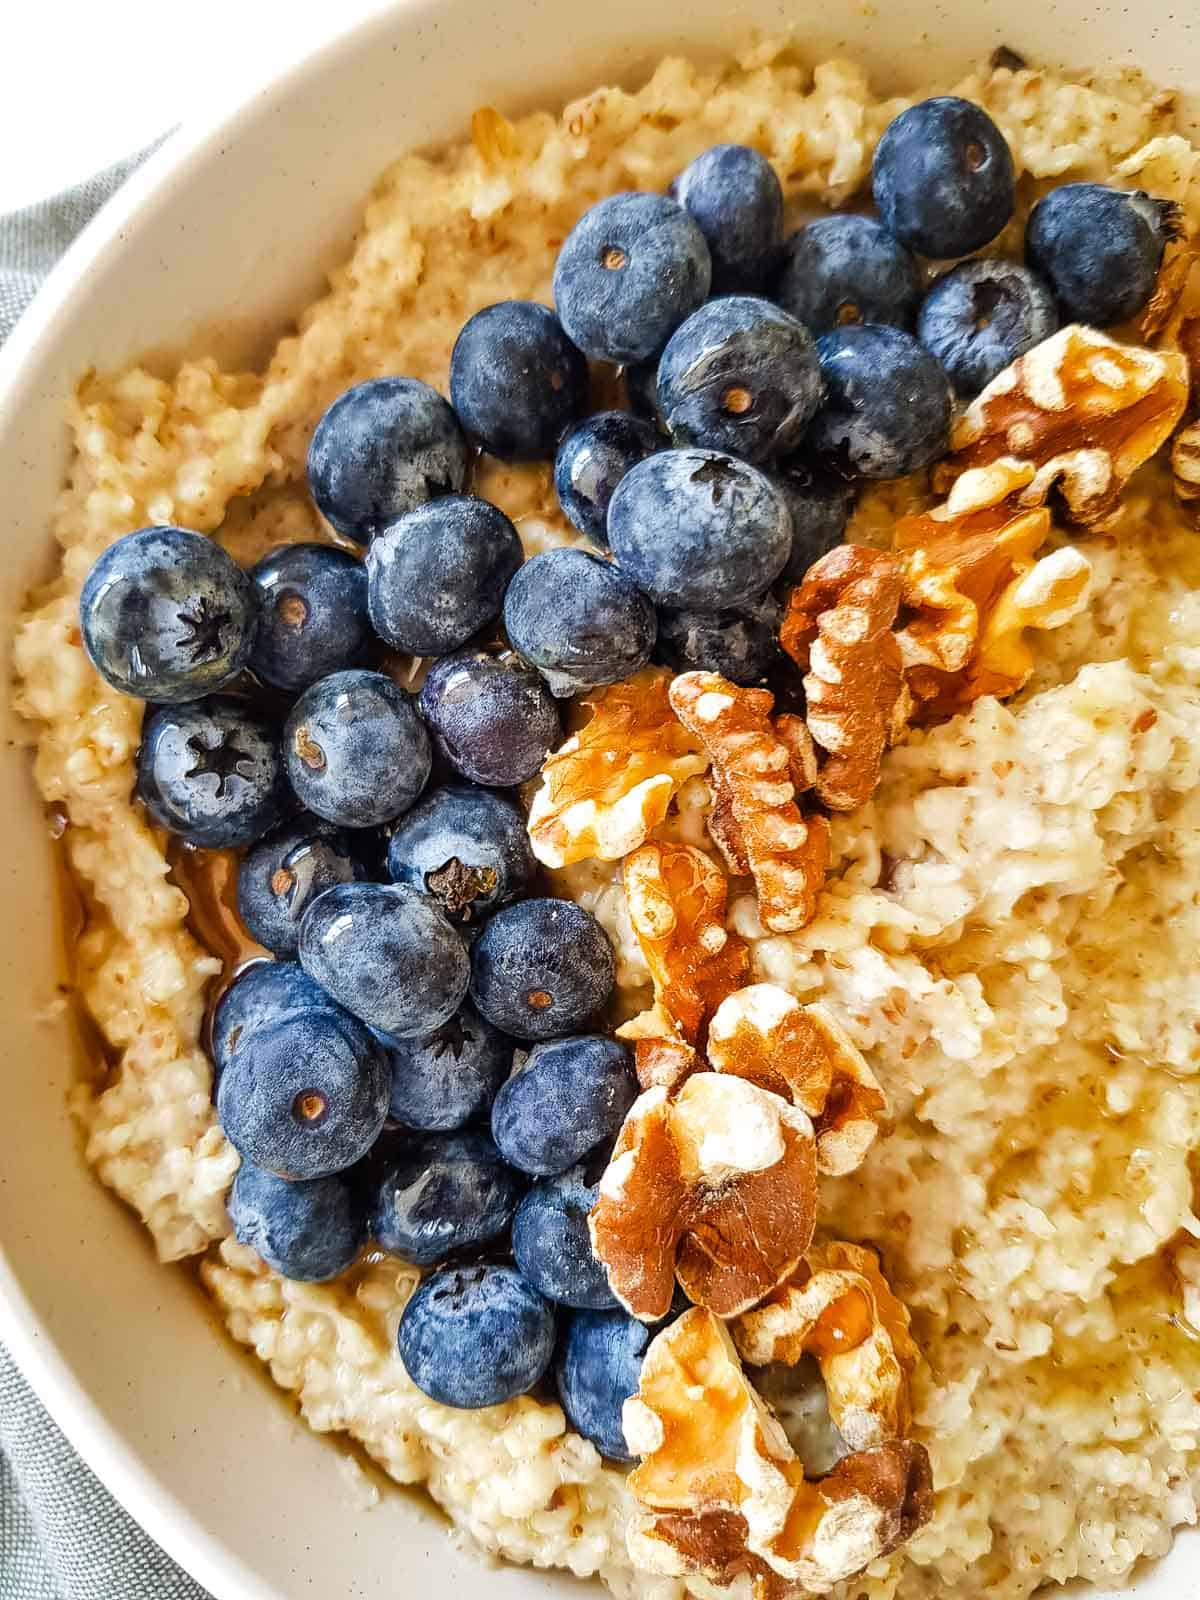 Close up of oatmeal topped with blueberries.